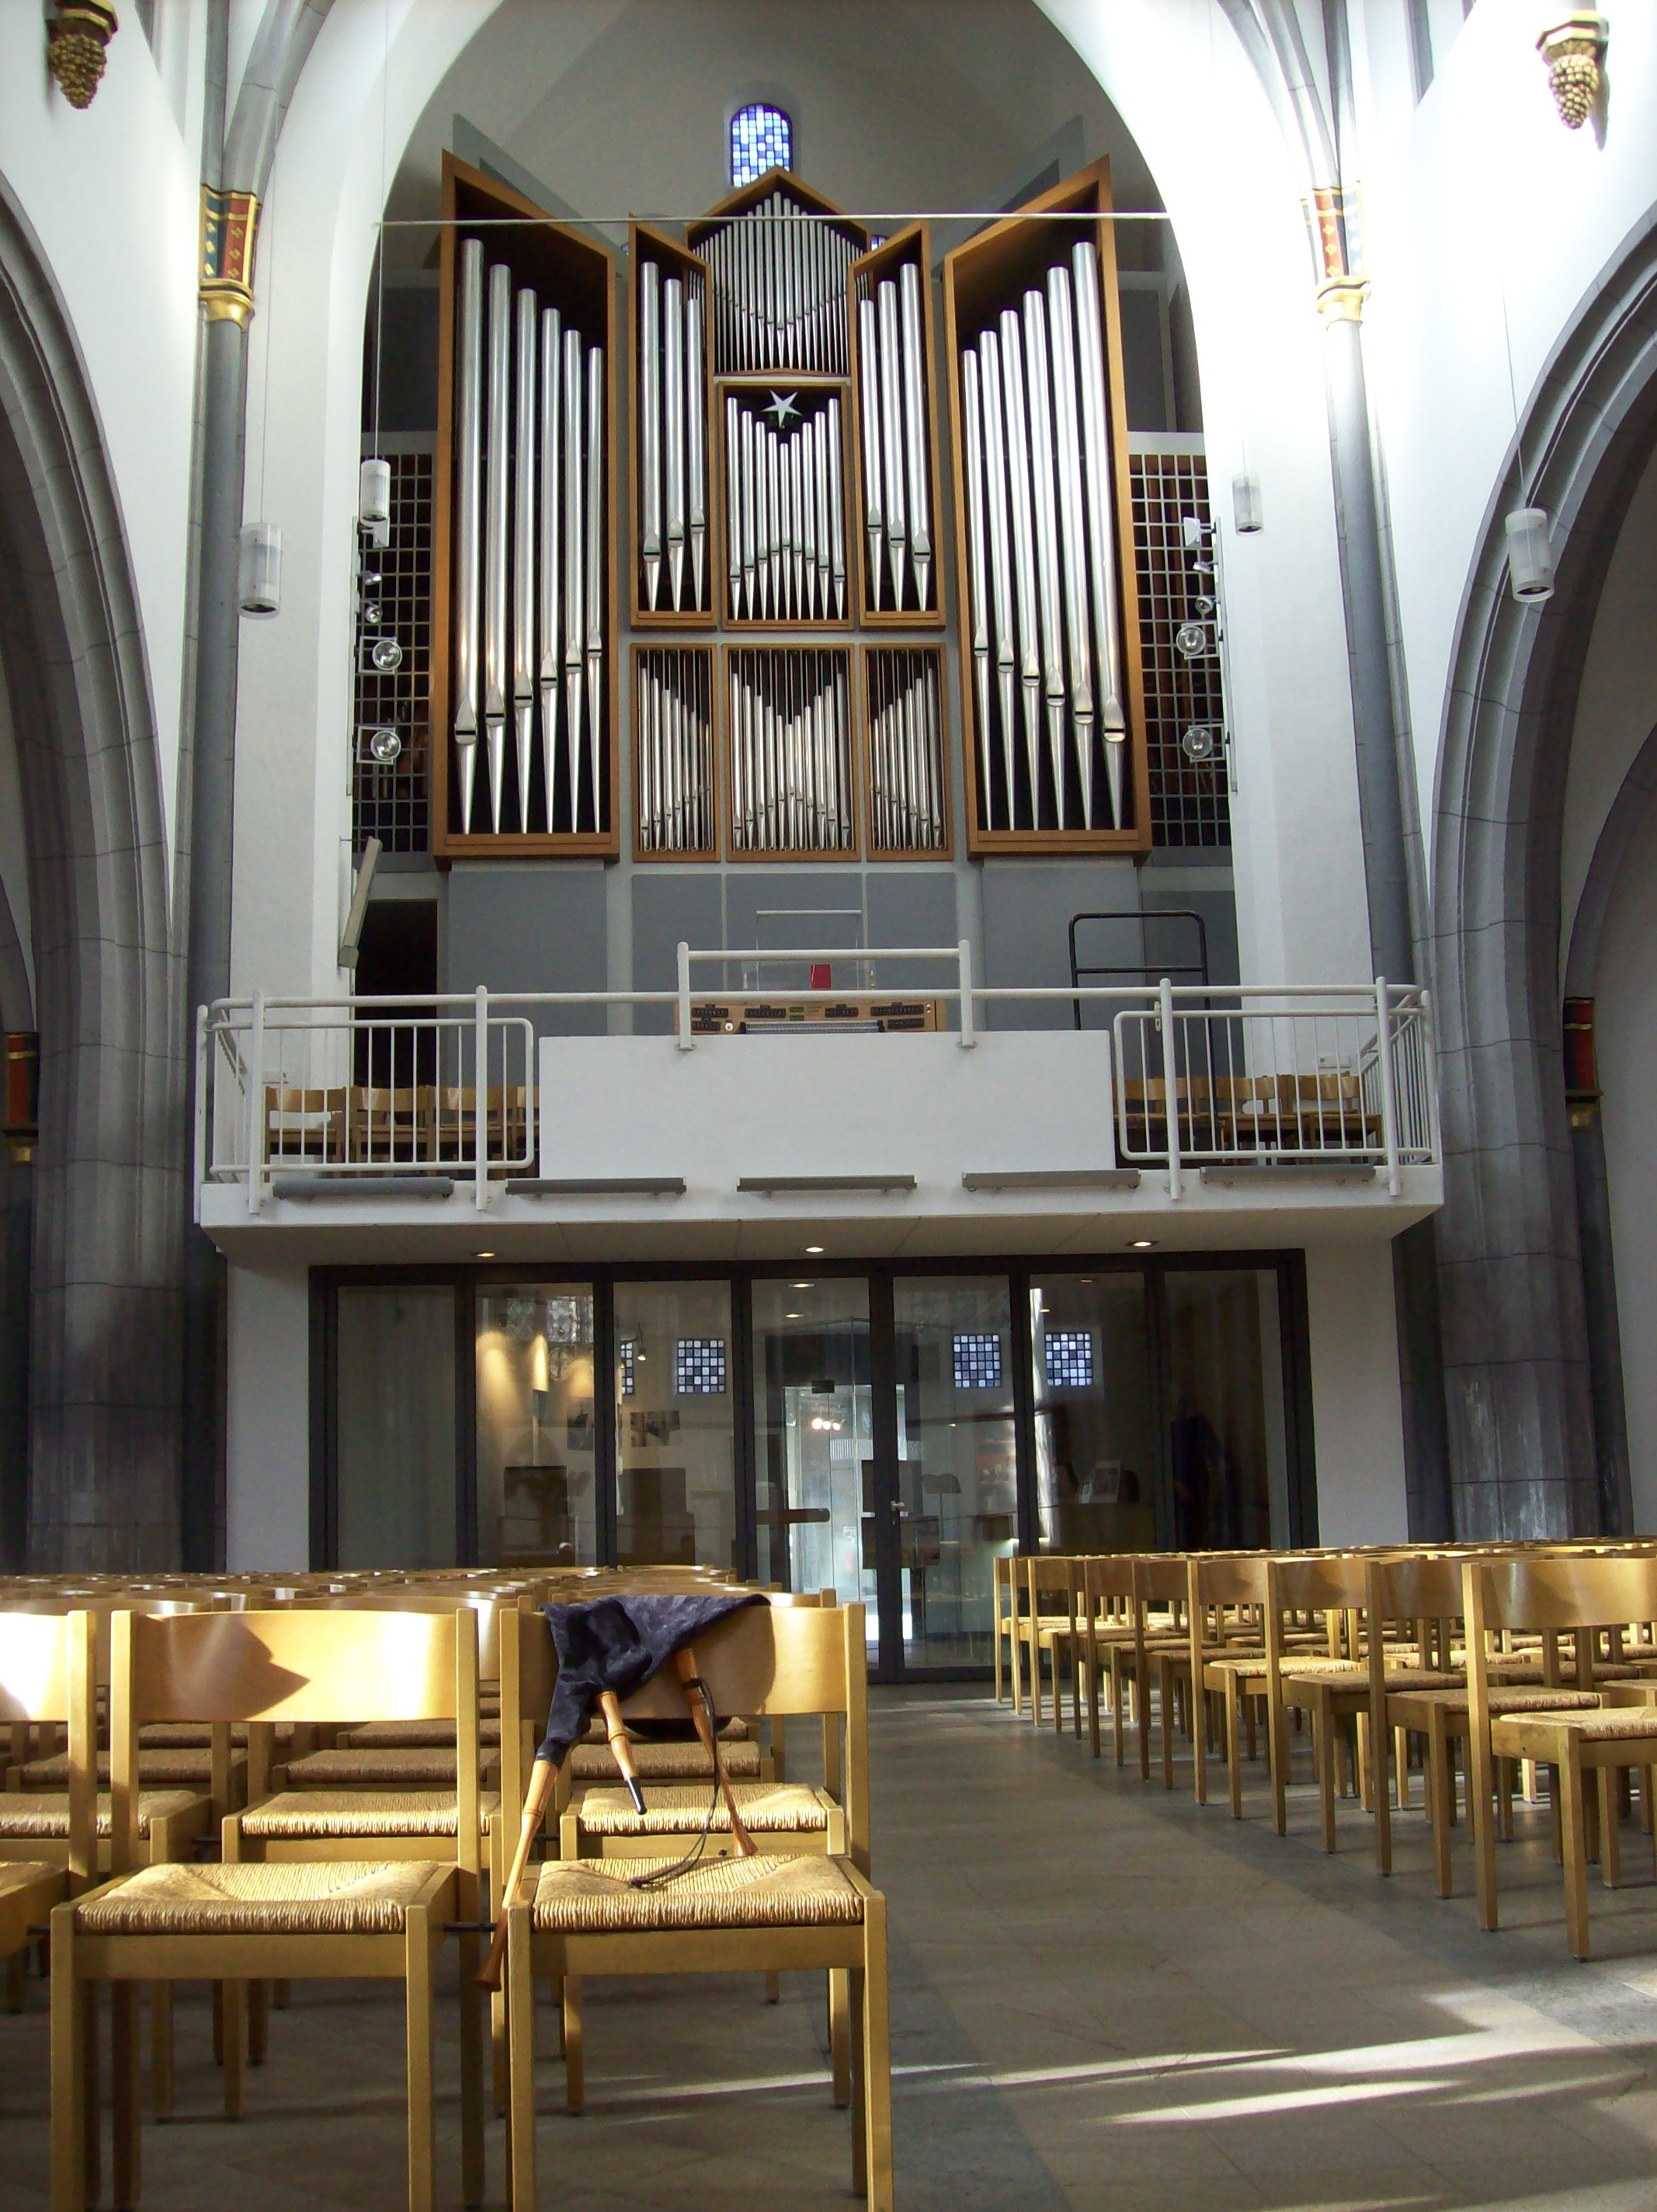 https://upload.wikimedia.org/wikipedia/commons/d/de/Antonorgel.JPG